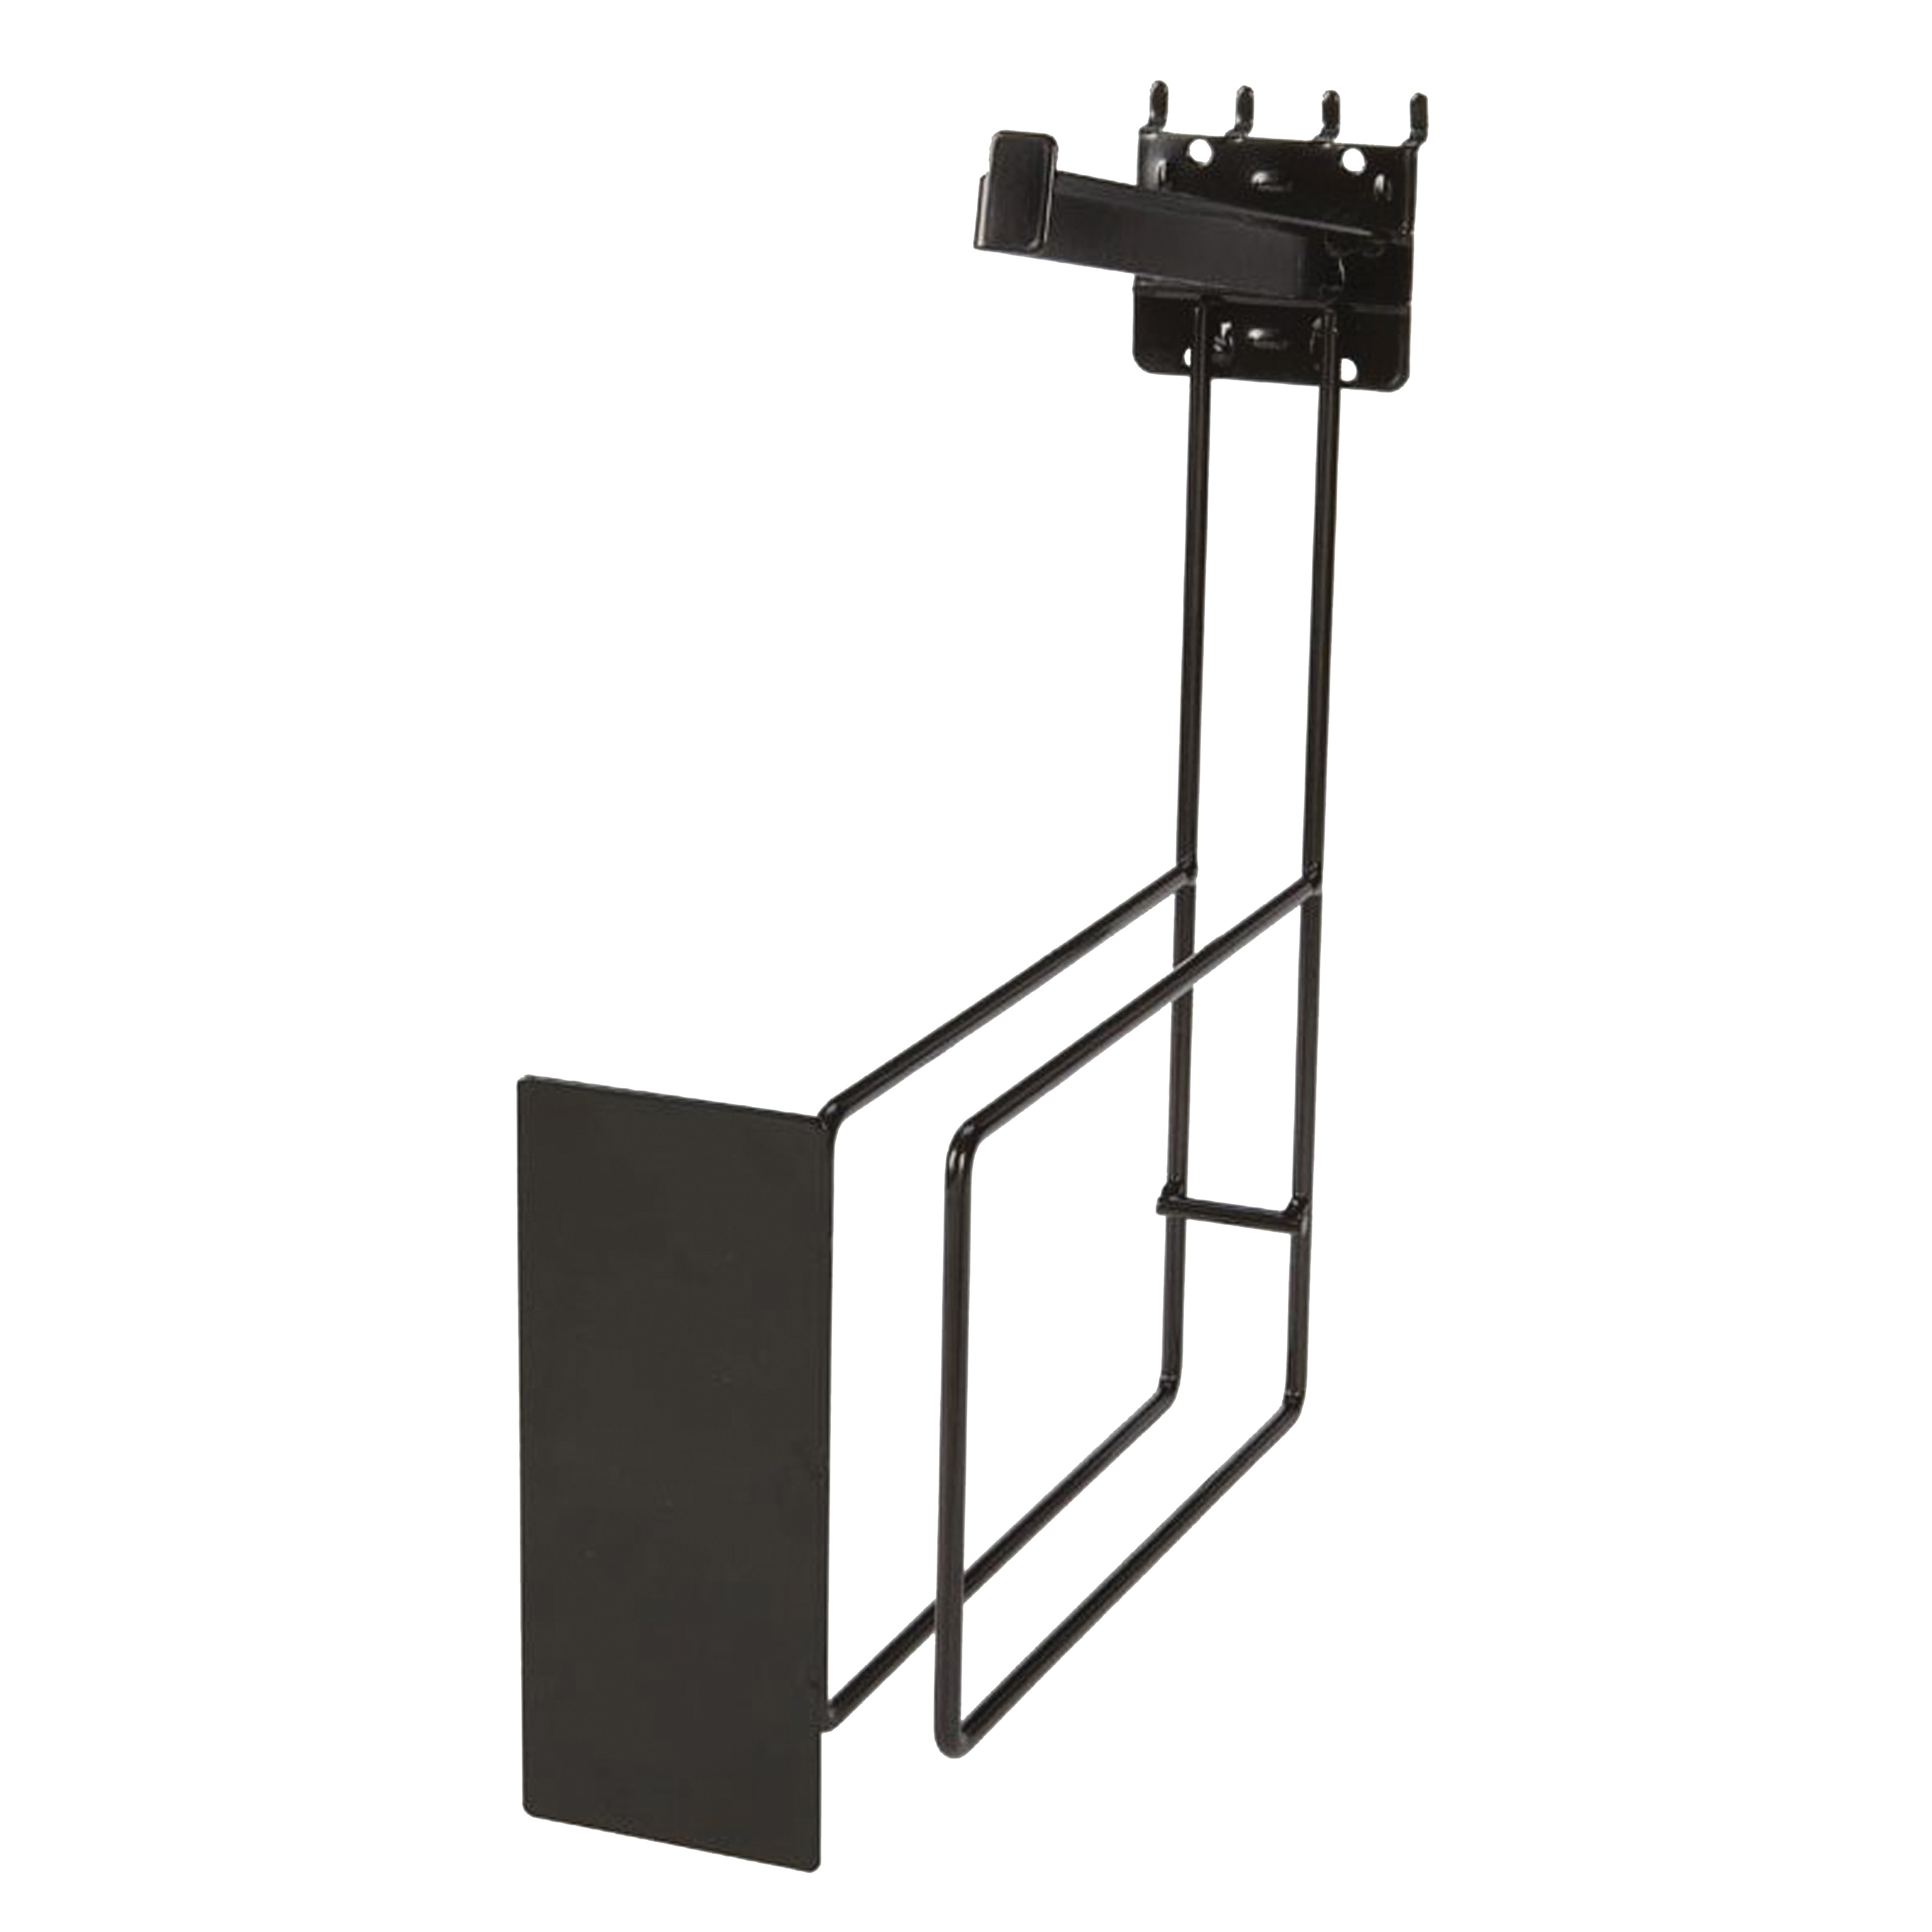 Picture of IRWIN 1896071 Bar Clamp Display Rack